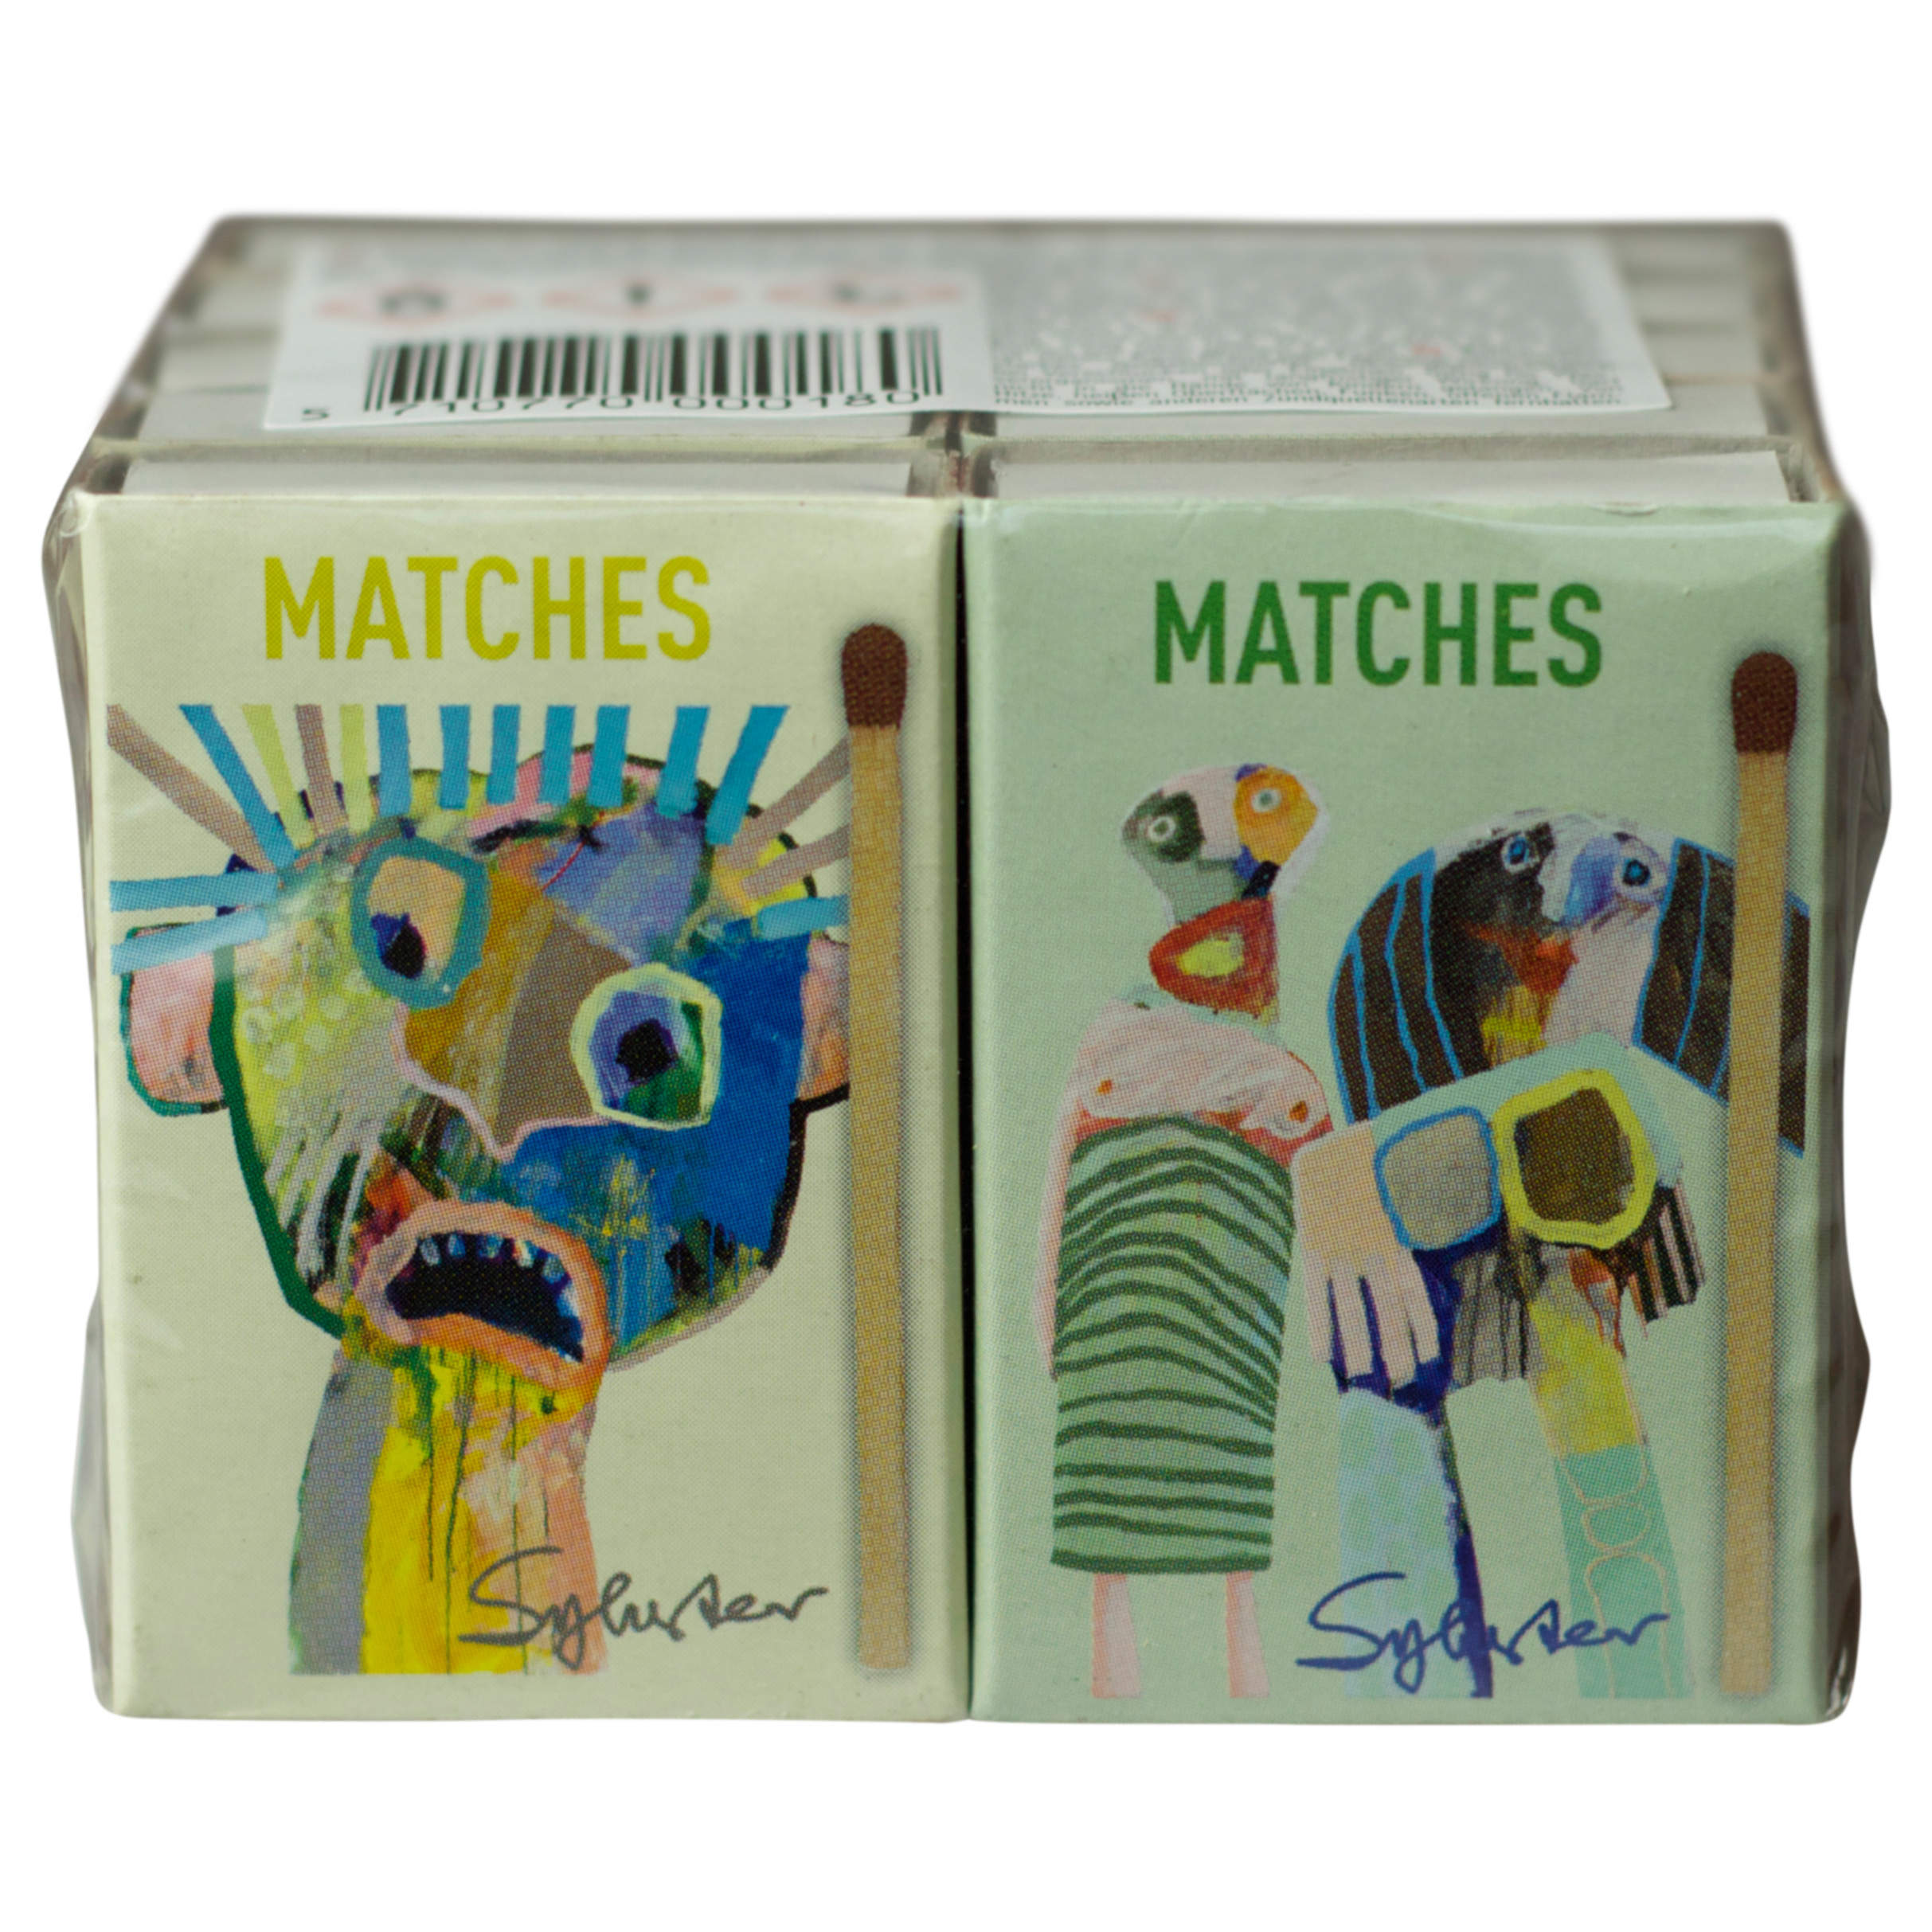 Short safety matches